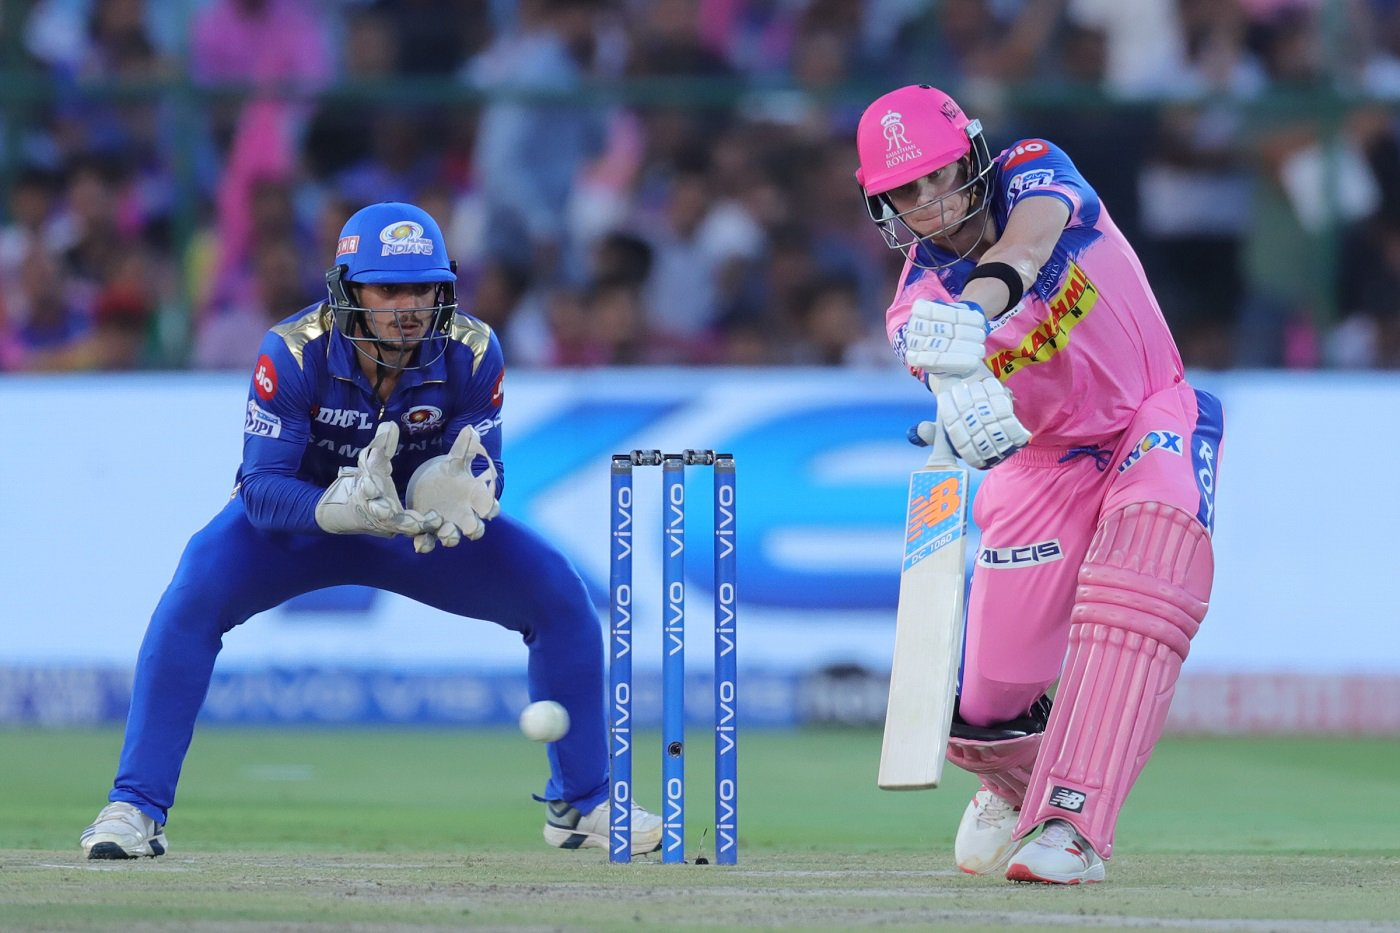 Steve Smith Fifty Ipl Rajasthan Royals Mumbai Indians